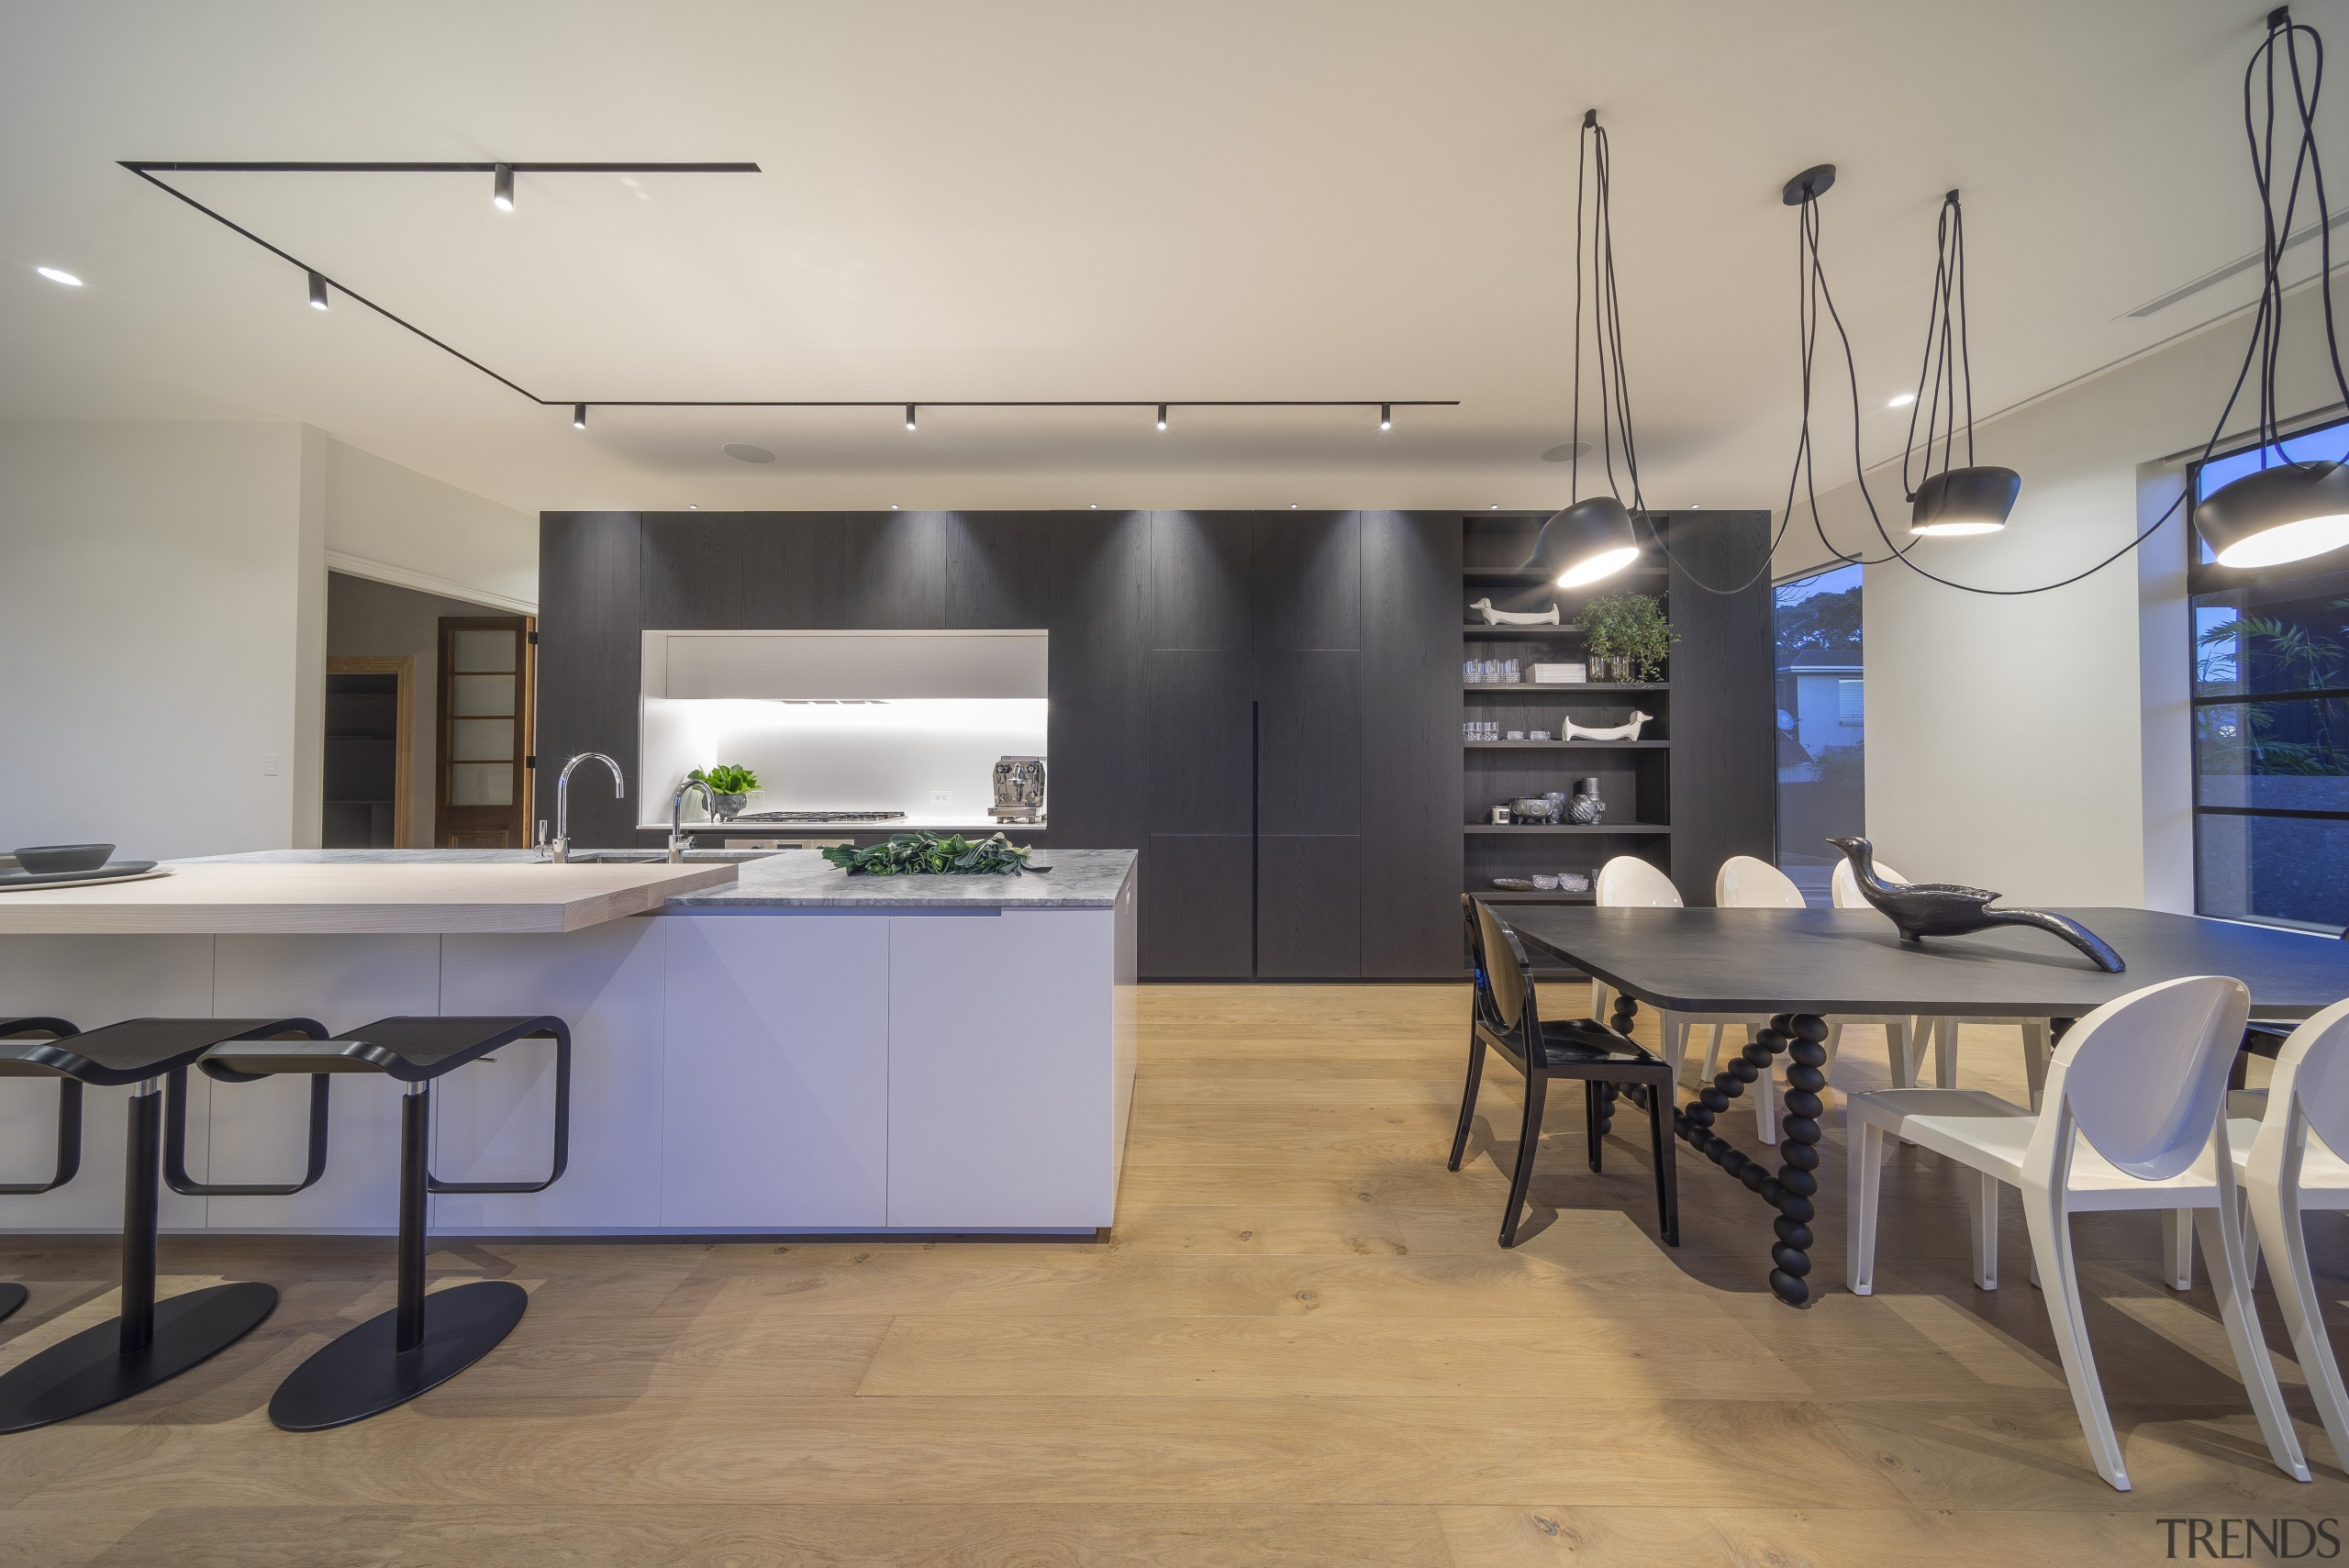 Highly Commended – Cronin Kitchens – 2019 TIDA architecture, building, cabinetry, ceiling, countertop, design, dining room, floor, flooring, furniture, hardwood, home, house, interior design, kitchen, light fixture, lighting, loft, property, real estate, room, table, wood flooring, gray